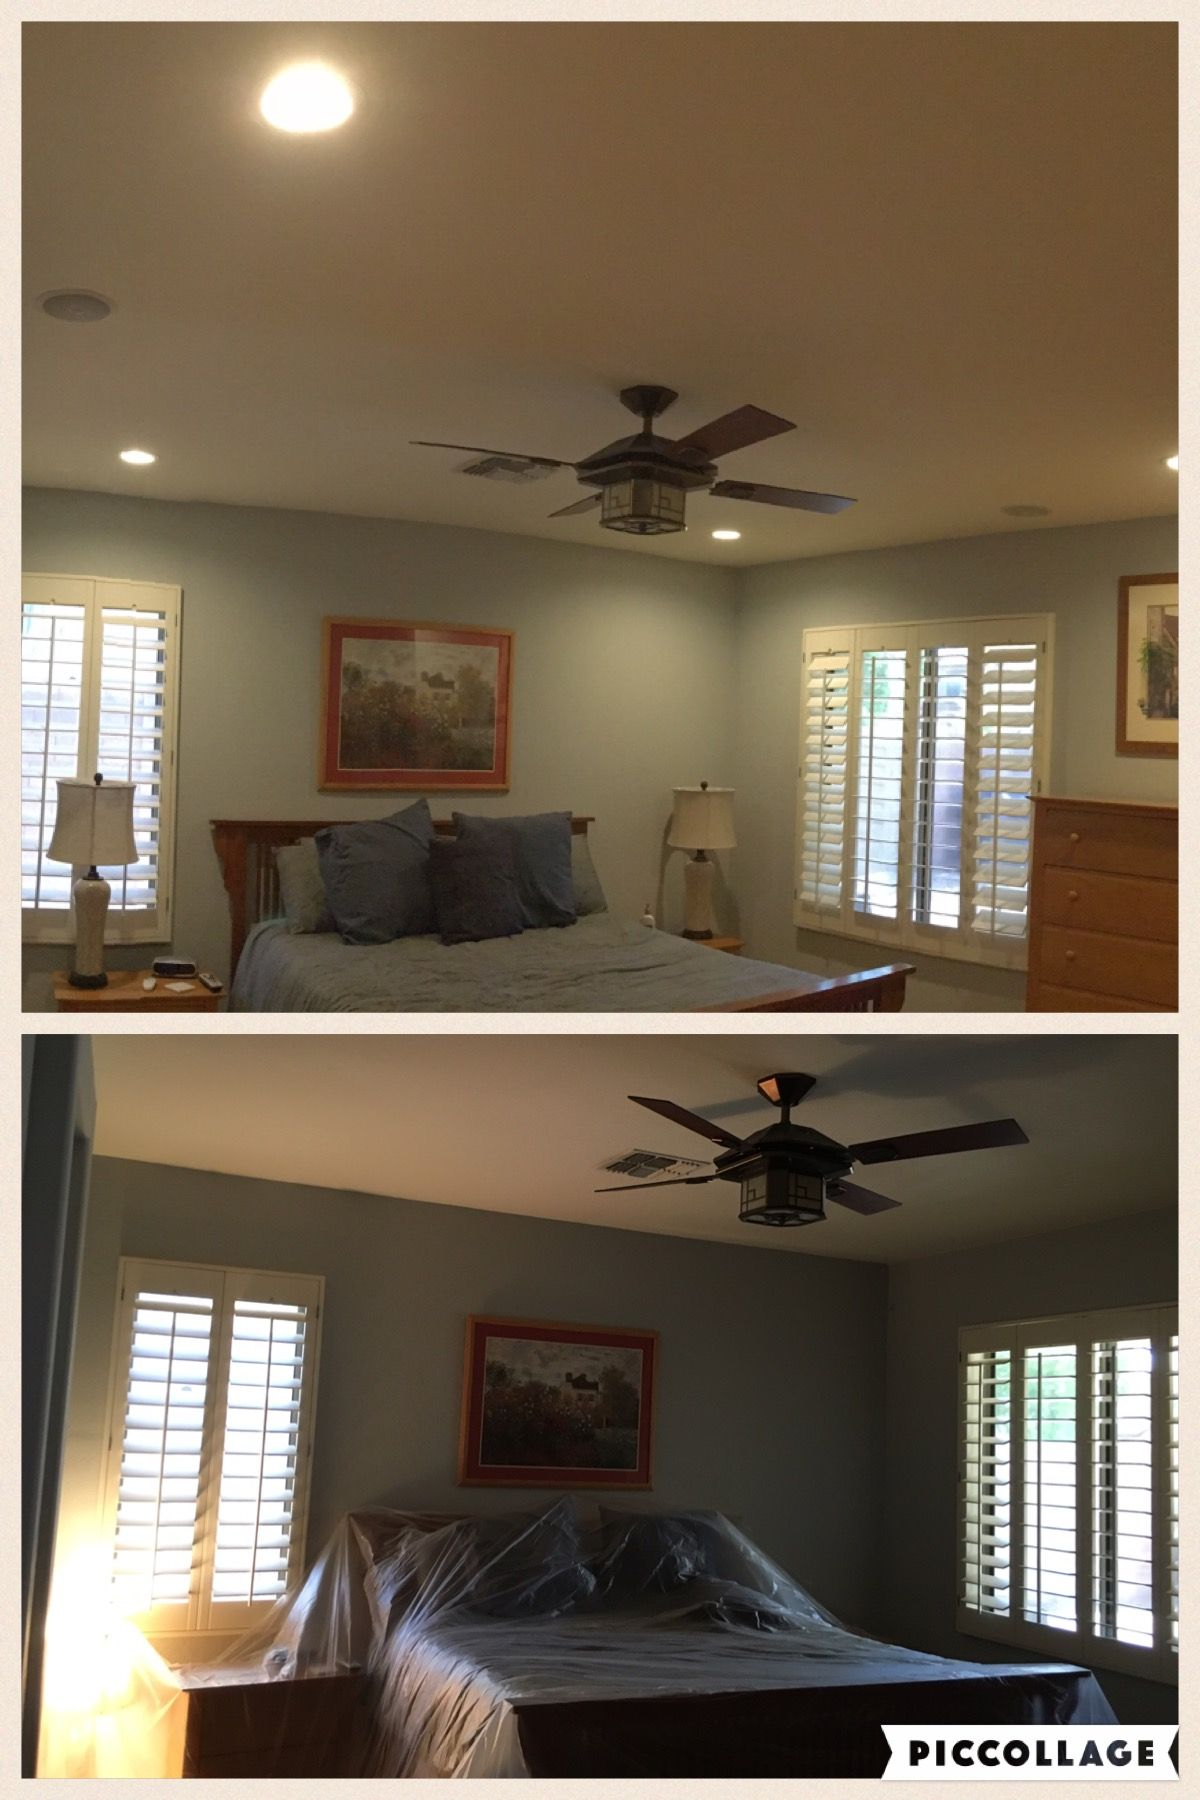 Az Recessed Lighting Installation Of New Led Lights With A Dimmer